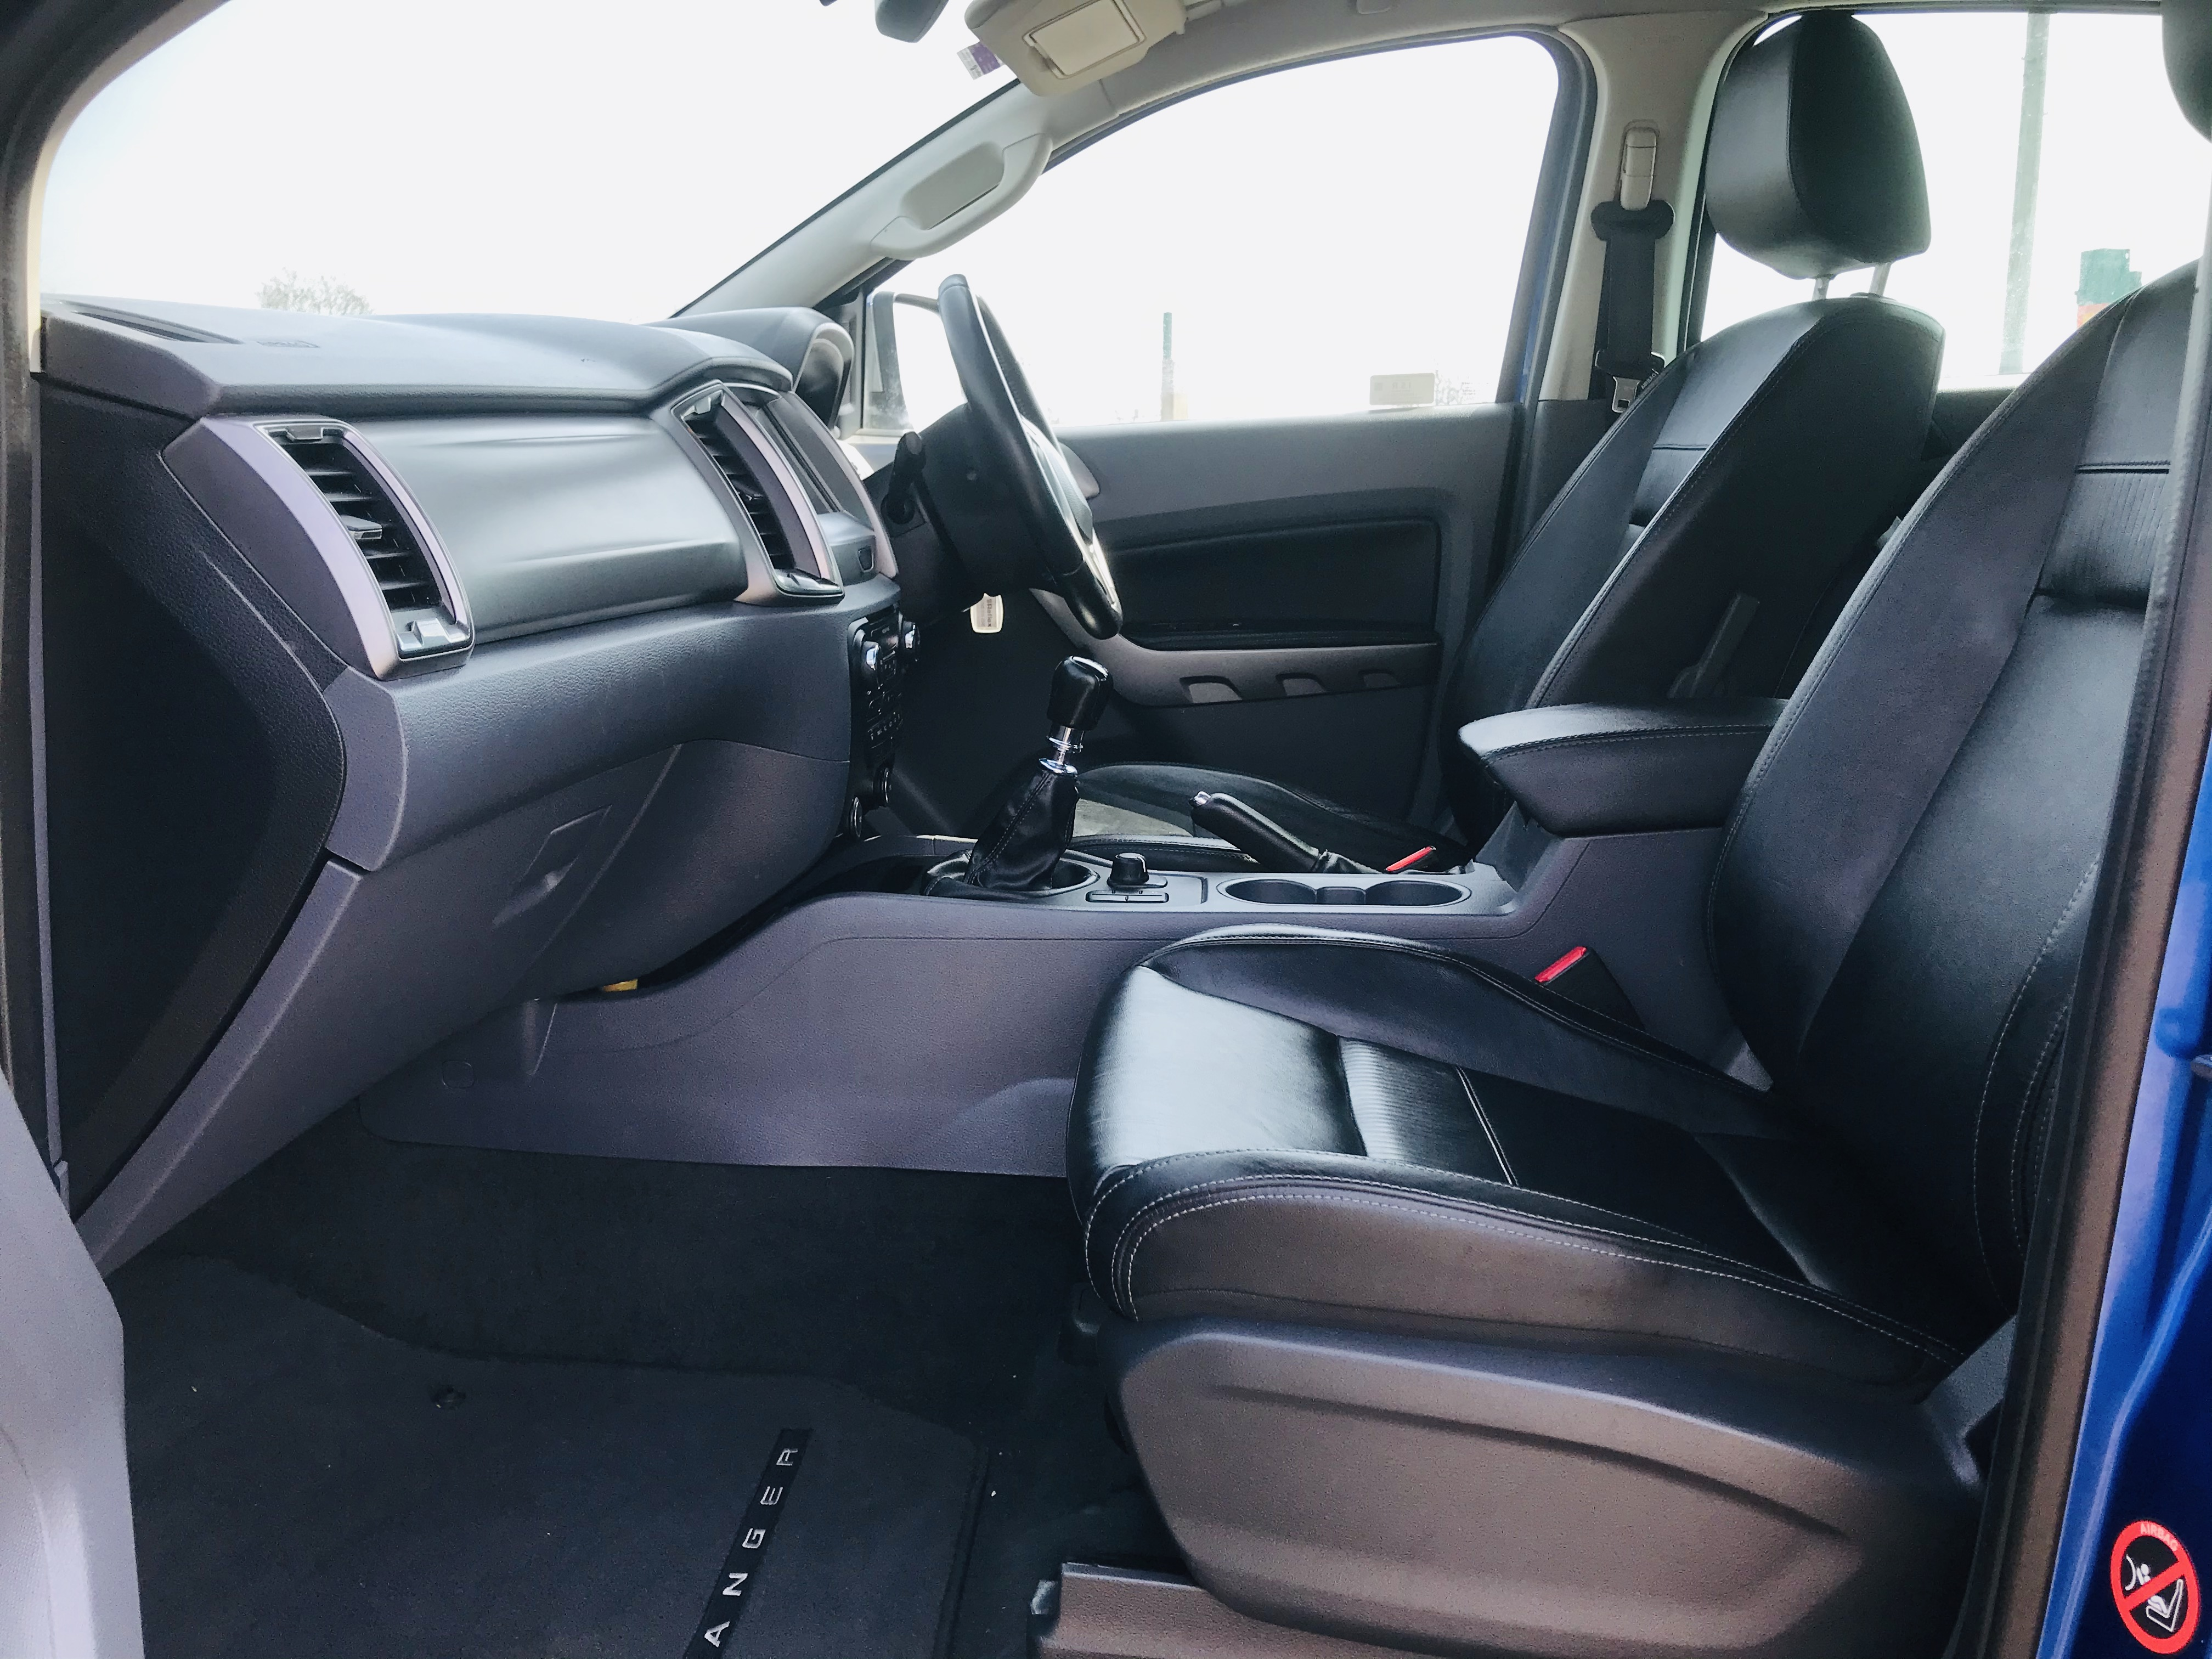 """ON SALE FORD RANGER 2.2TDCI """"LIMITED"""" D/C PICK UP (17 REG) 1 OWNER FSH - FULL LEATHER - CLIMATE & AC - Image 21 of 38"""